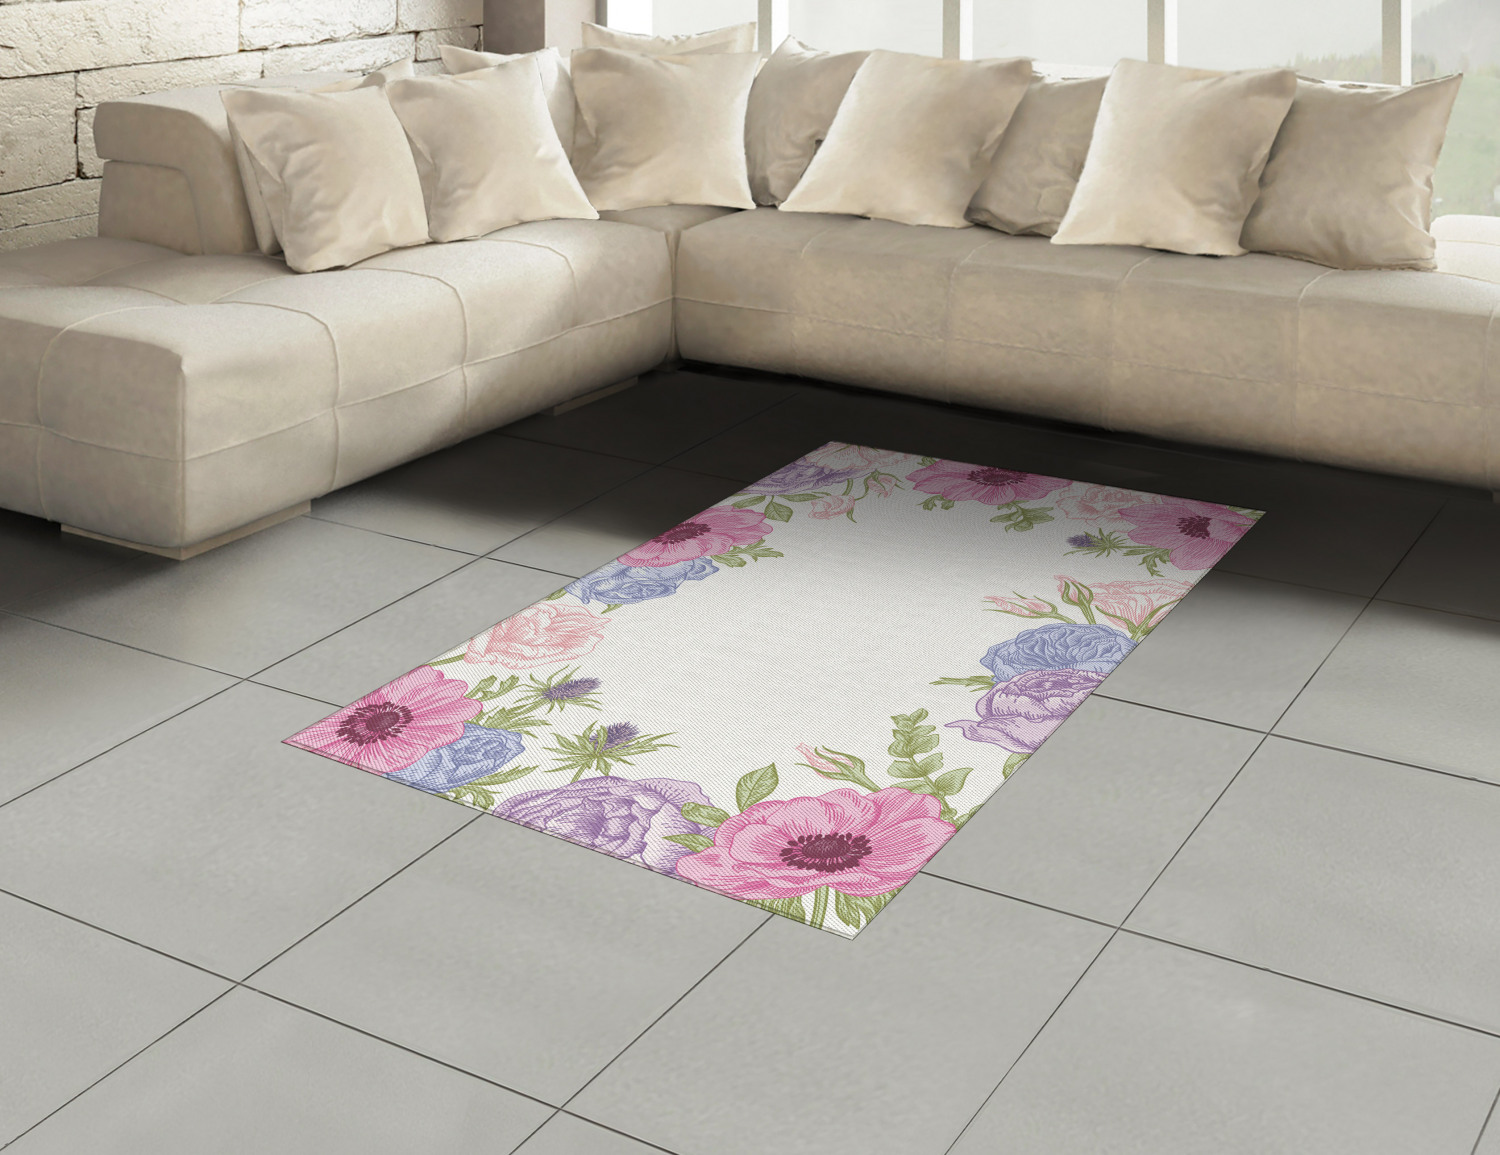 Anemone-Flower-Area-Rug-Decor-Flat-Woven-Accent-Rug-Home-Decor-2-Sizes-Ambesonne thumbnail 50